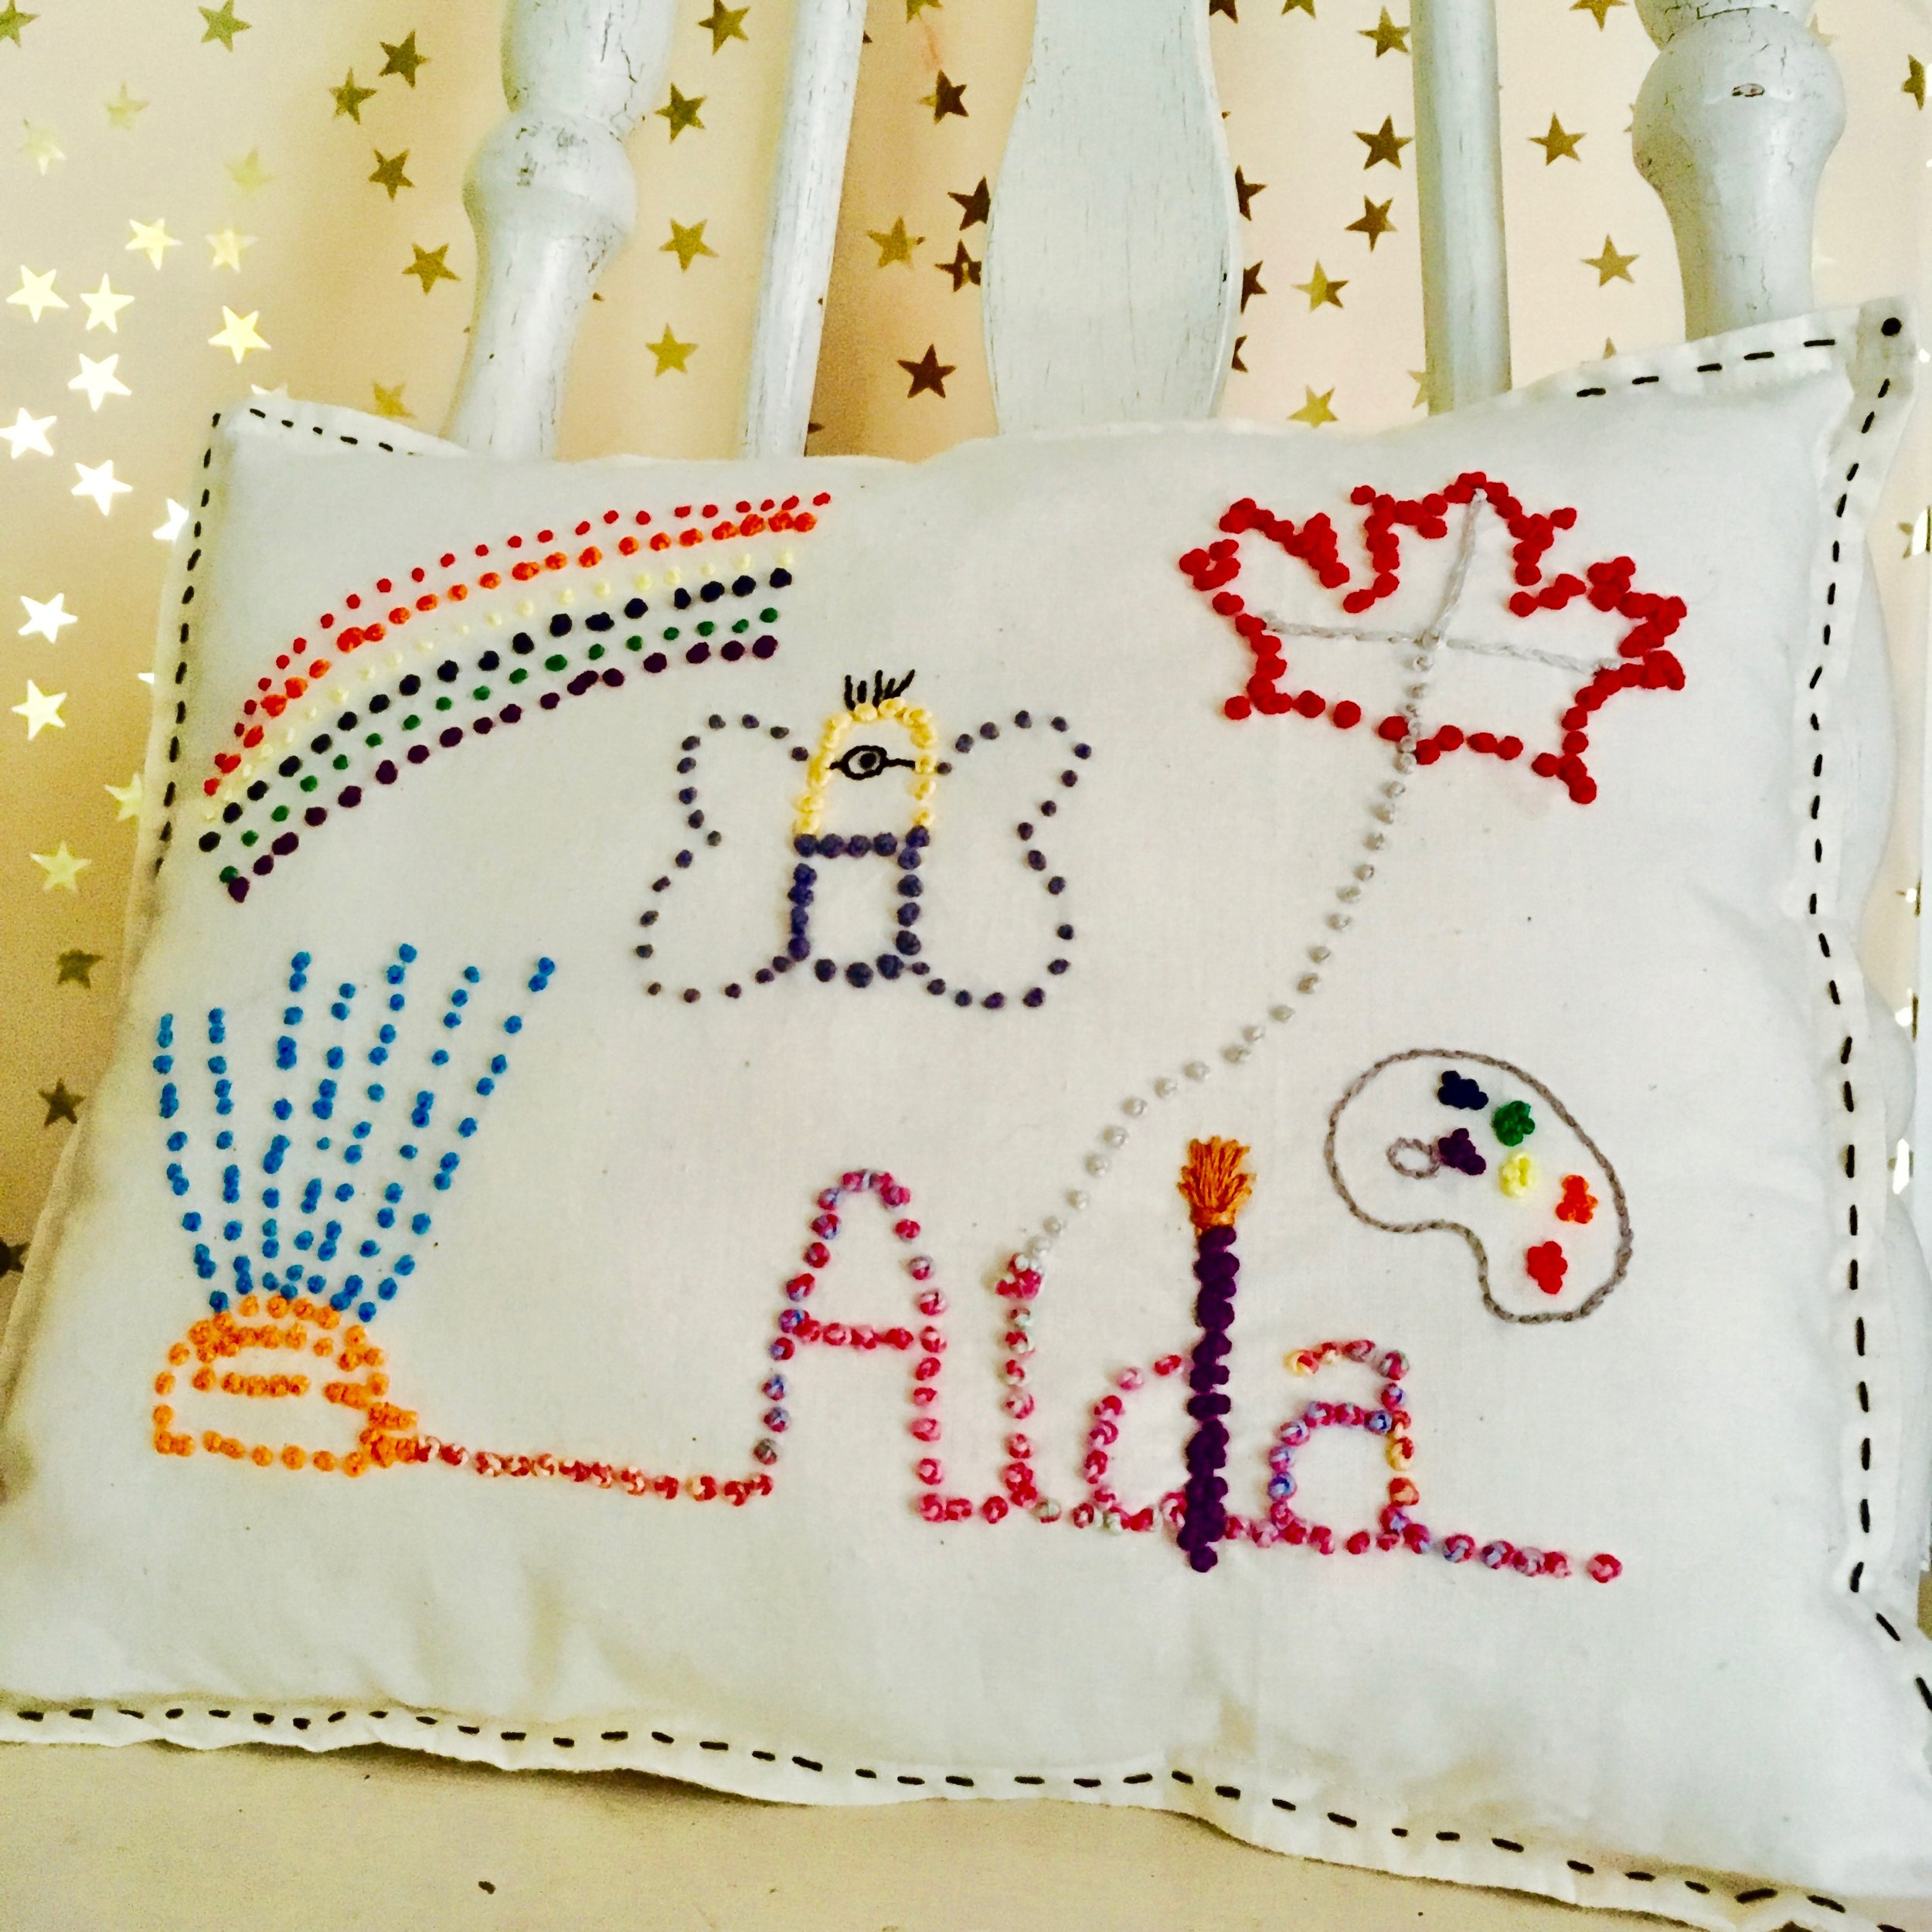 Image Description: White pillow with black sewing around the edges sitting on white chair with a pink and gold star background. The pillow has various images such as a sprinkler, rainbow, butterfly, Canadian maple leaf, a paint palette, and the name Aida.